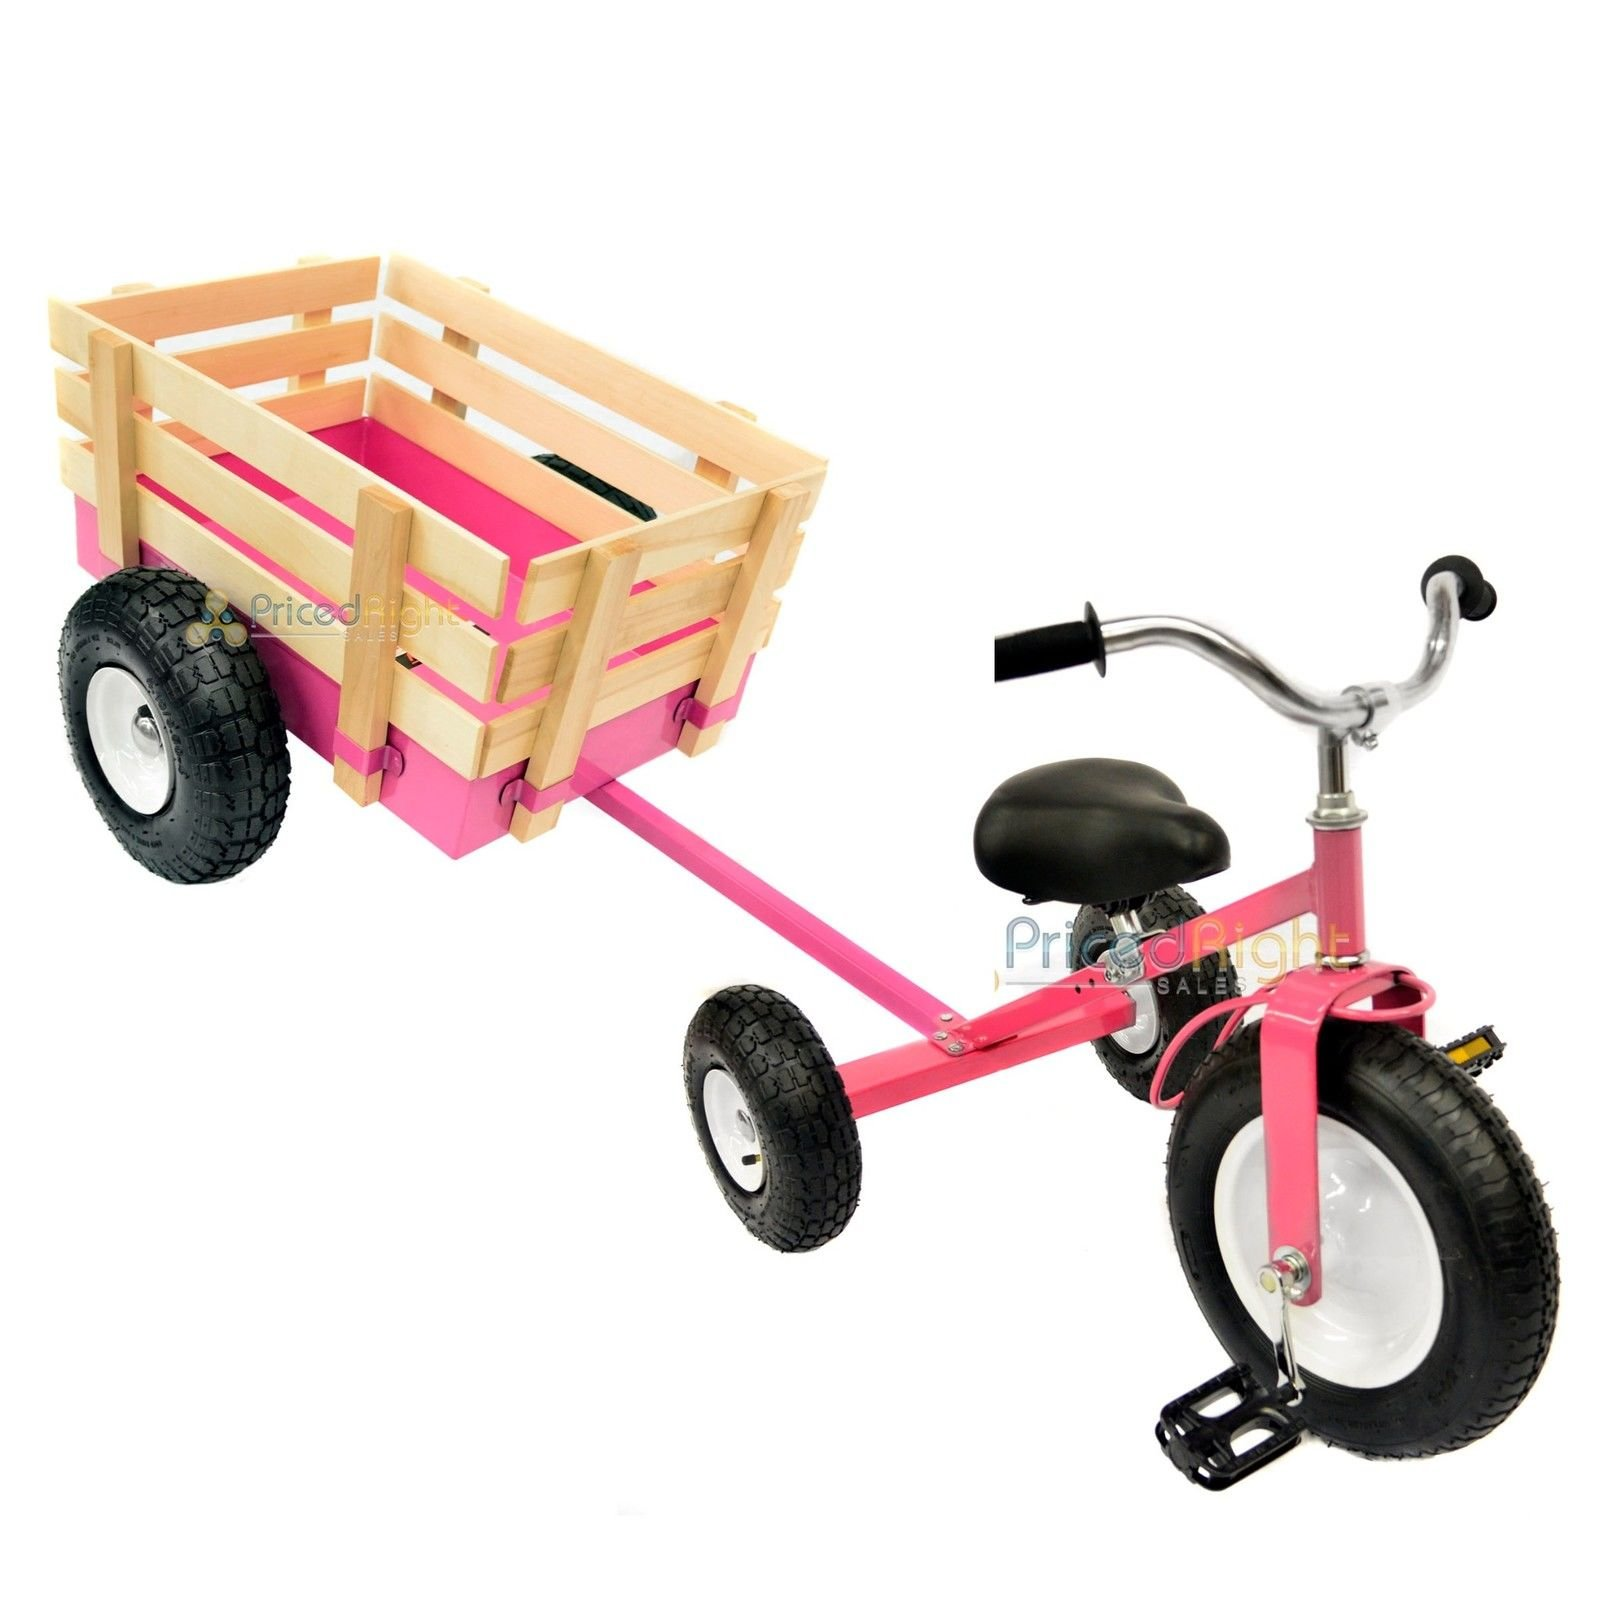 All Terrain Tricycle with Wagon (Pink), #CART-042P